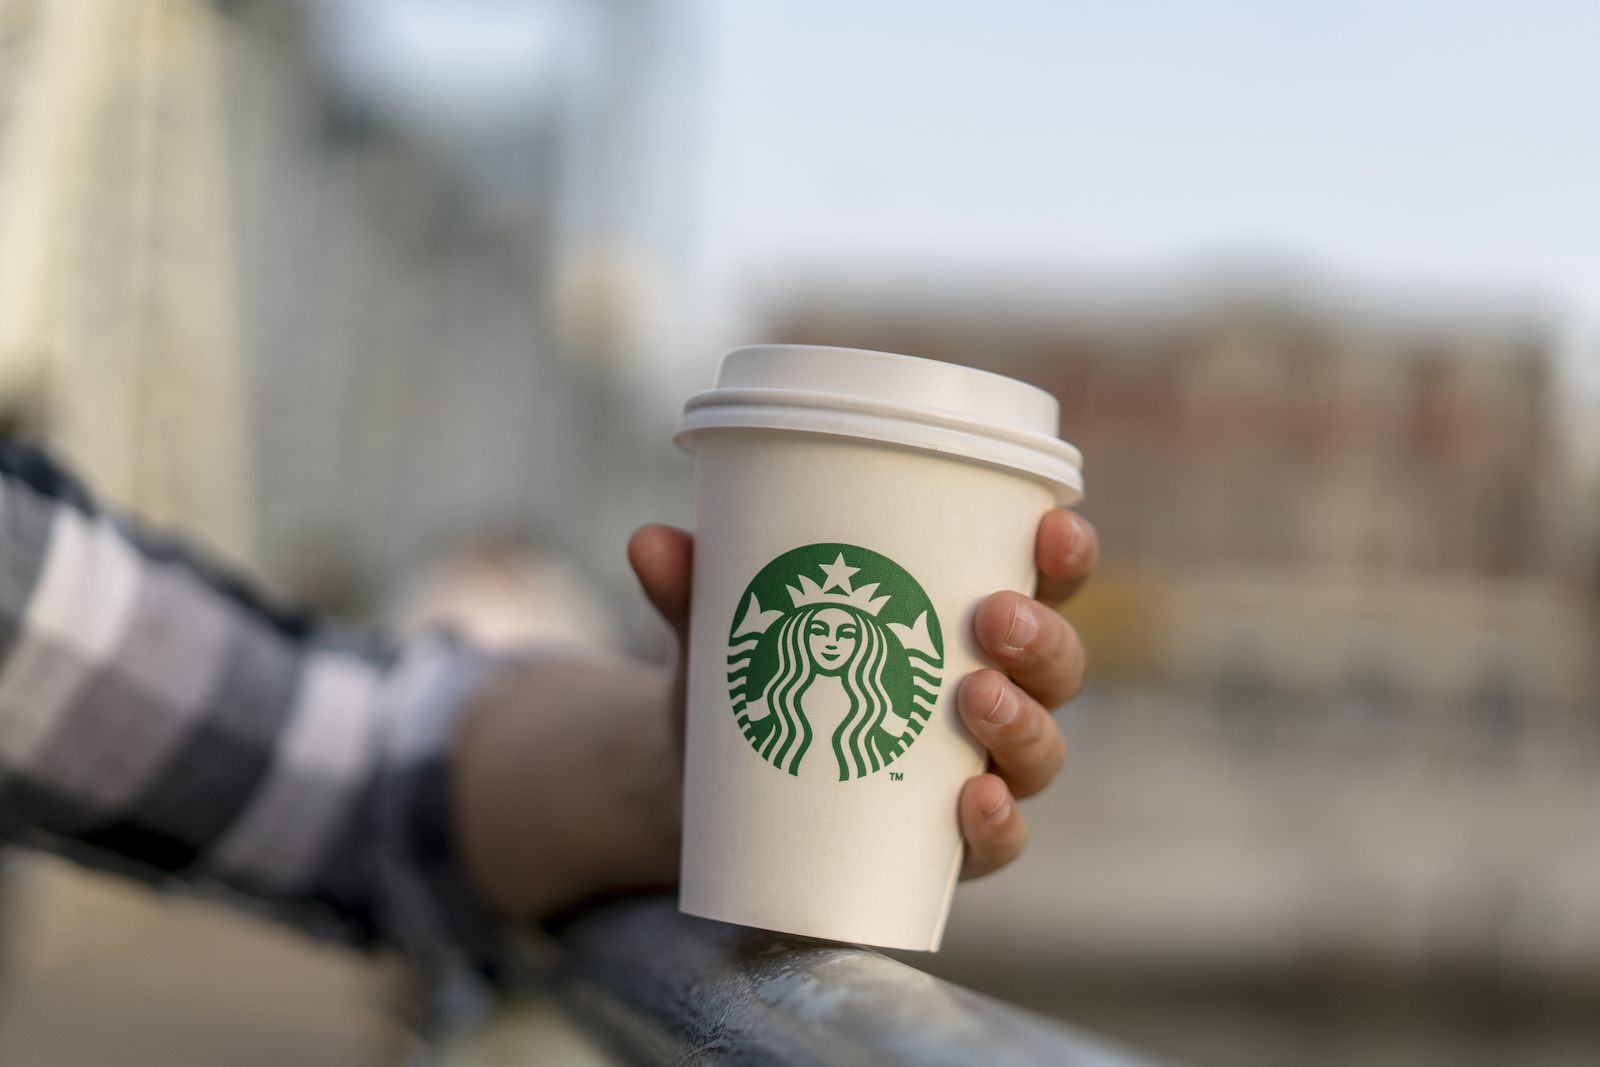 Despite Starbucks' pro-trans efforts, transgender employees are complaining about how they've been treated ...